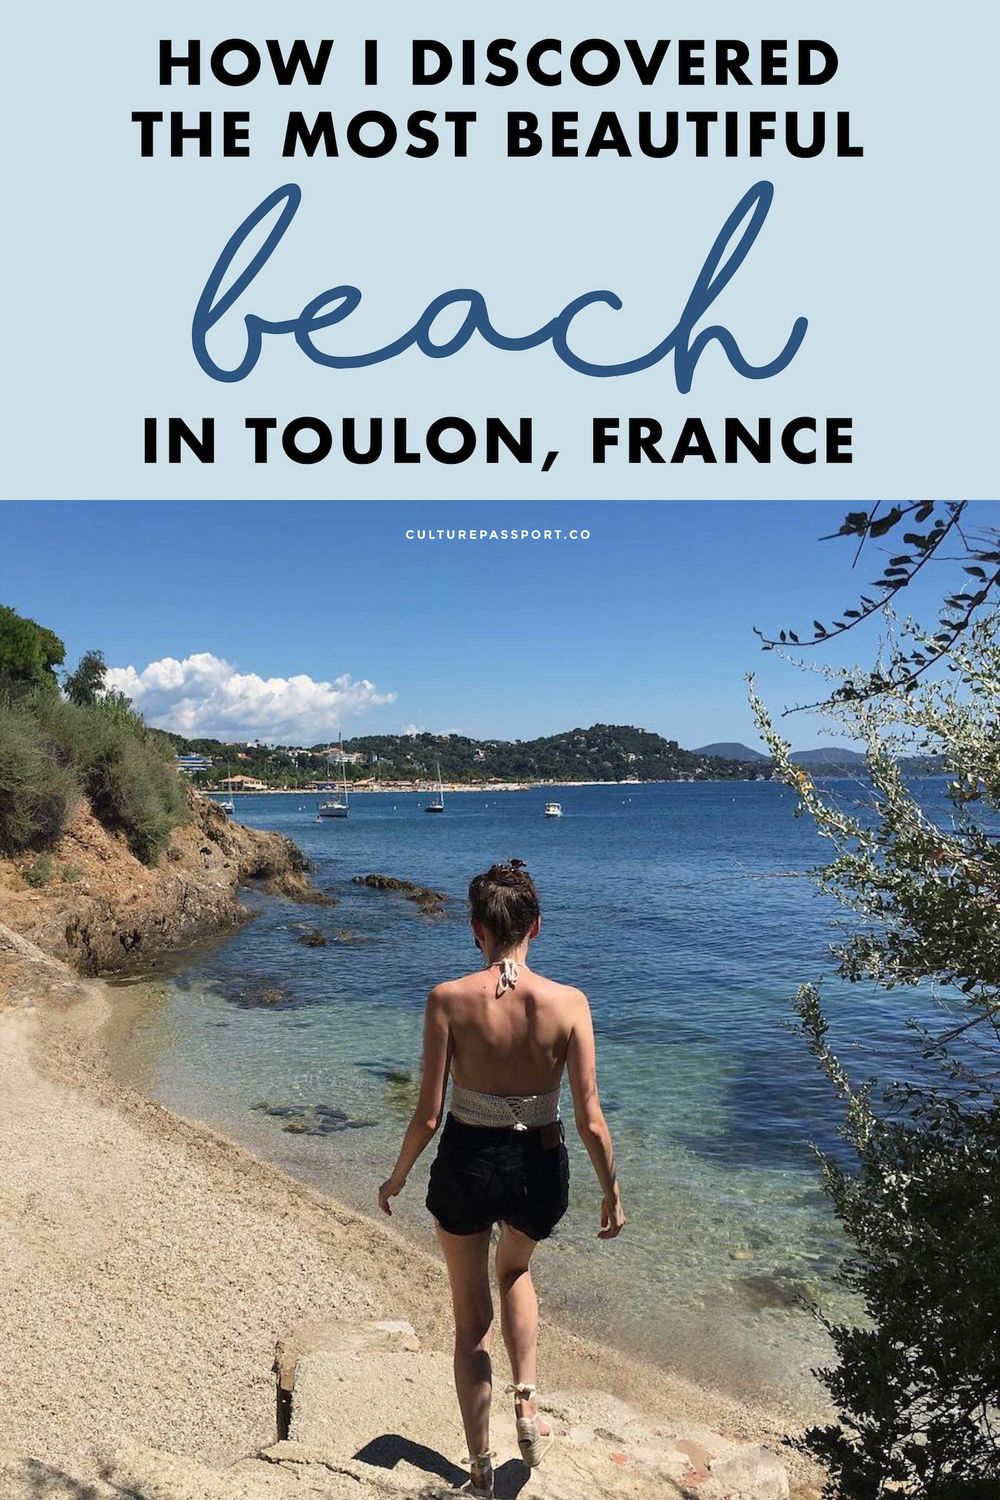 Beautiful Beach Toulon France